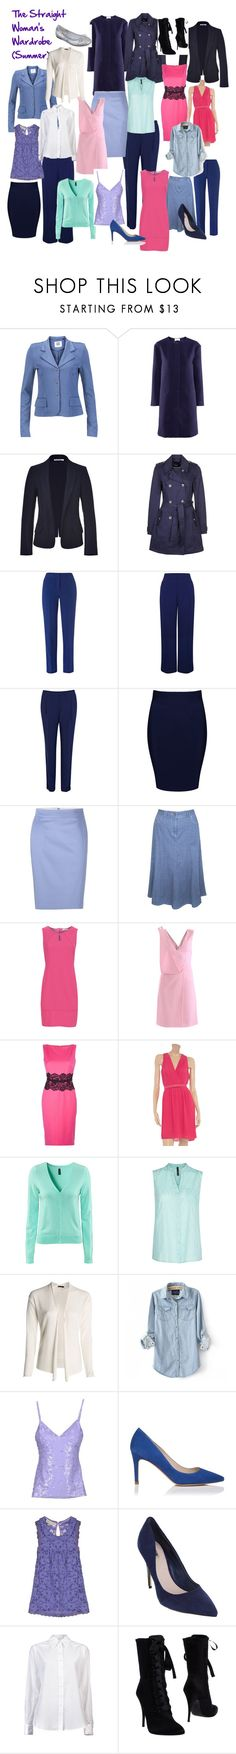 """""""The Straight Shaped Woman's Wardrobe (Summer)"""" by l-edwards ❤ liked on Polyvore featuring Vero Moda, H&M, Jil Sander, even&odd, Hobbs, Minuet, River Island, Boohoo, Paul Smith and Dash"""